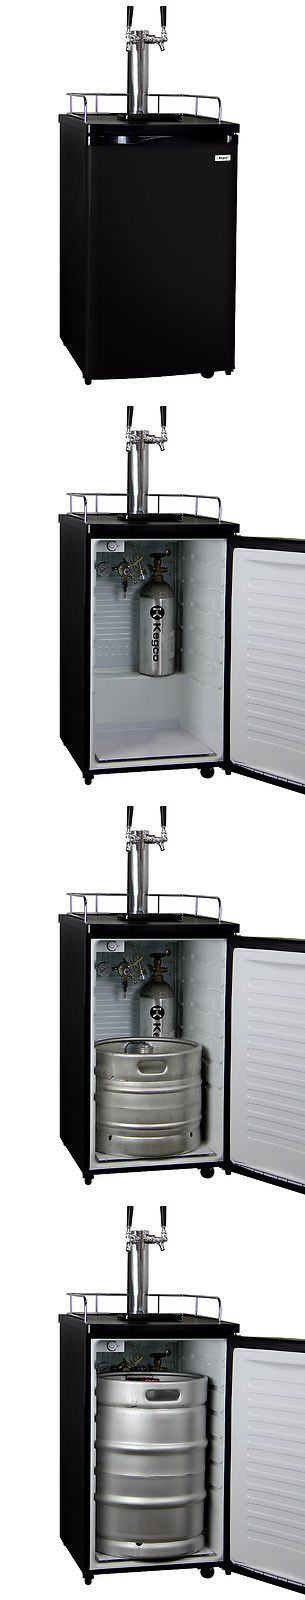 Liquor and Beer Dispensers 103429: Kegerator Beer Fridge Keg Tap Cooler - Double Faucet - D System -> BUY IT NOW ONLY: $610.31 on eBay!